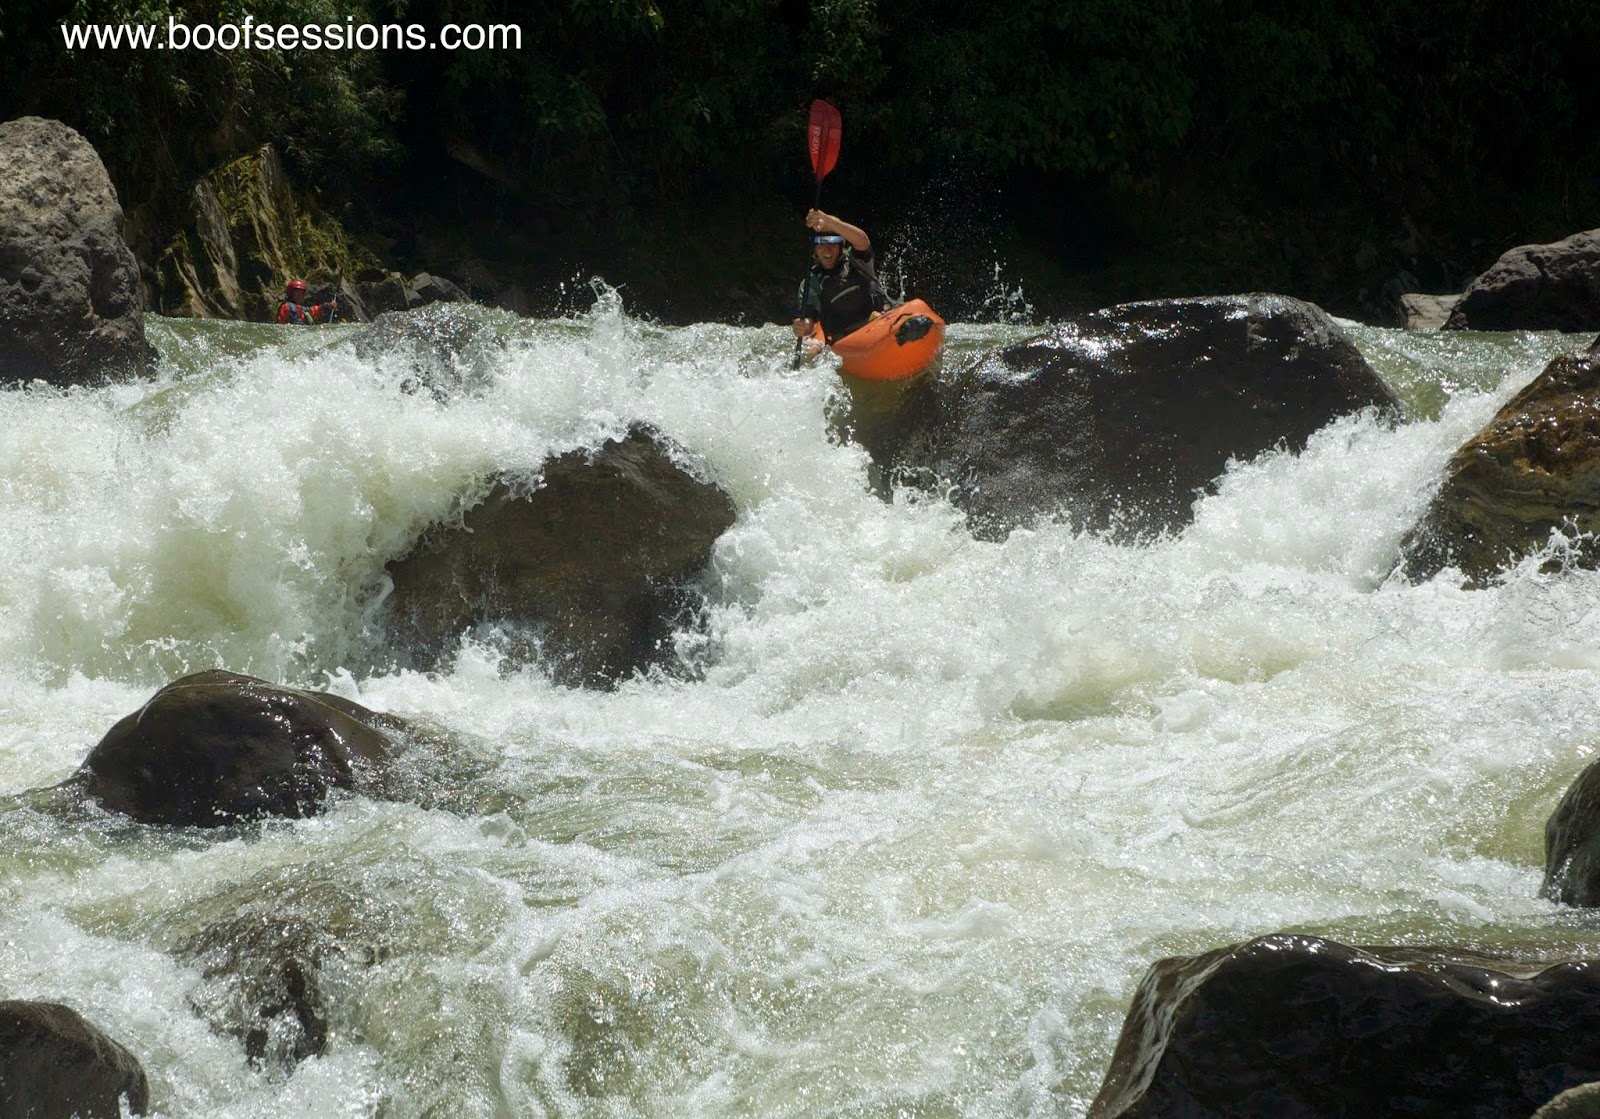 THE BEST OF WHITEWATER KAYAKING IN ECUADOR KAYAK HOSTEL 7 DAY EXPEDITIONS GUIDE RIVERS